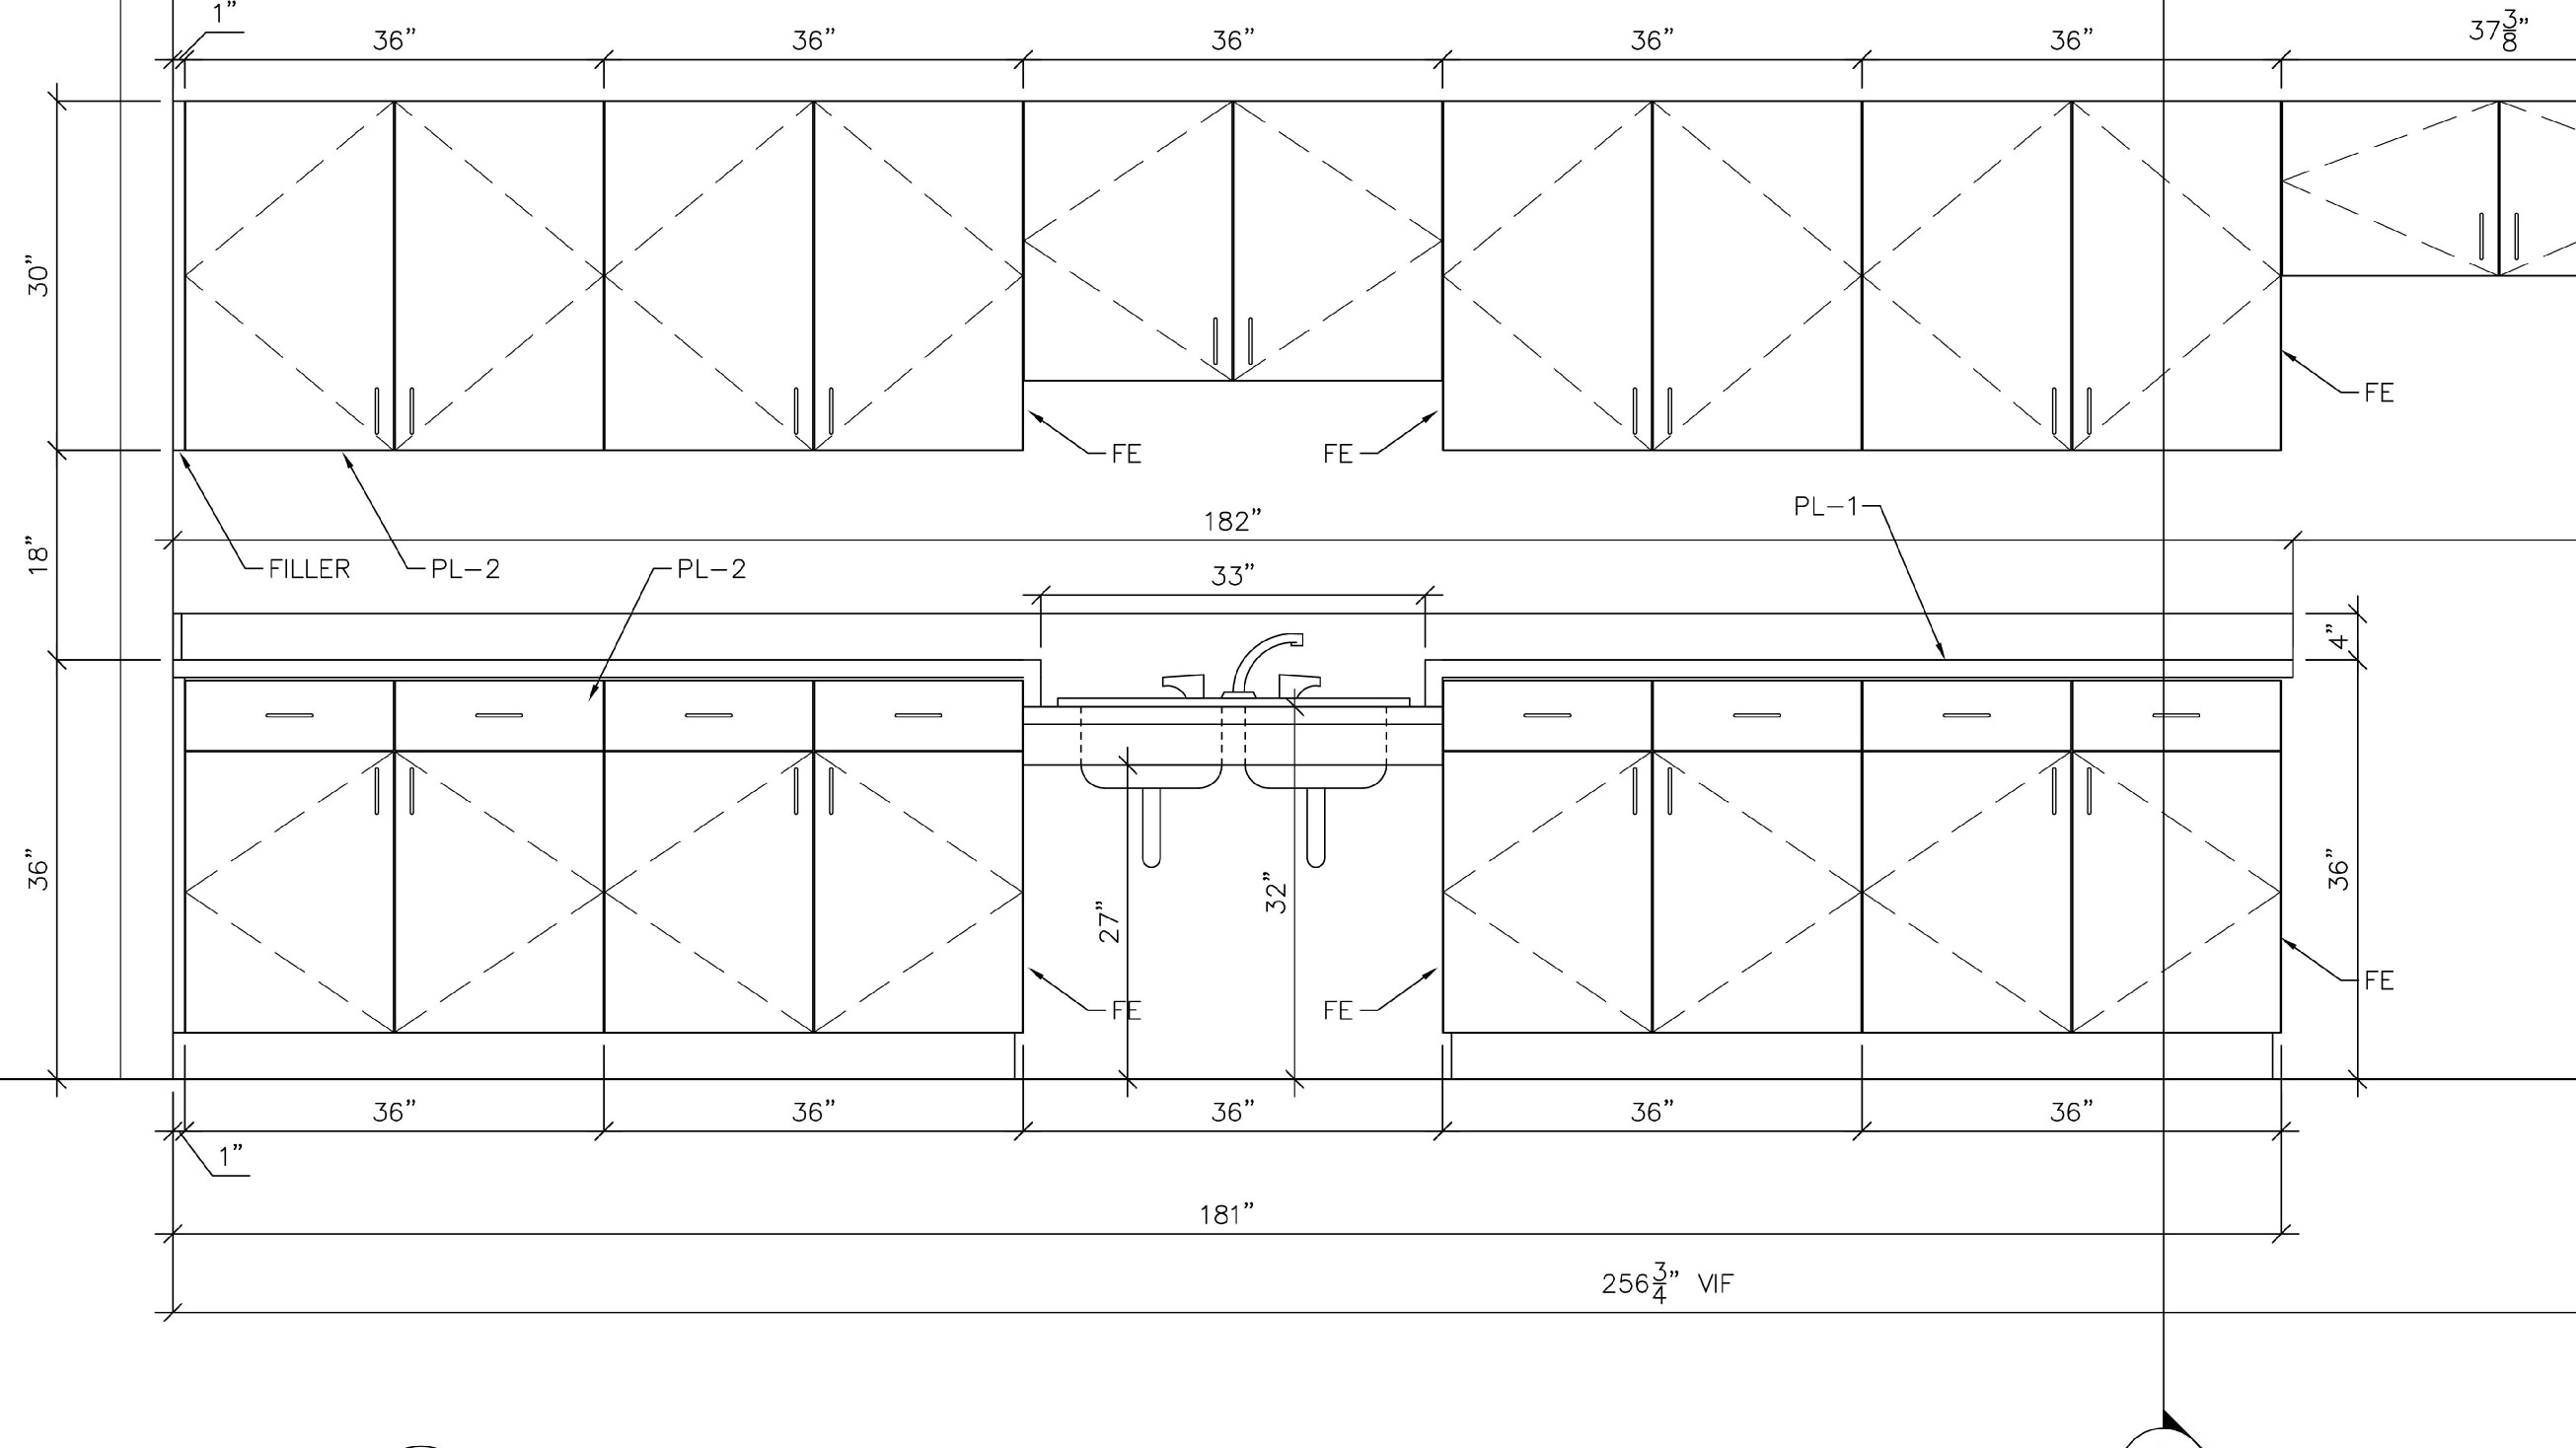 Shop Drawing Submittals